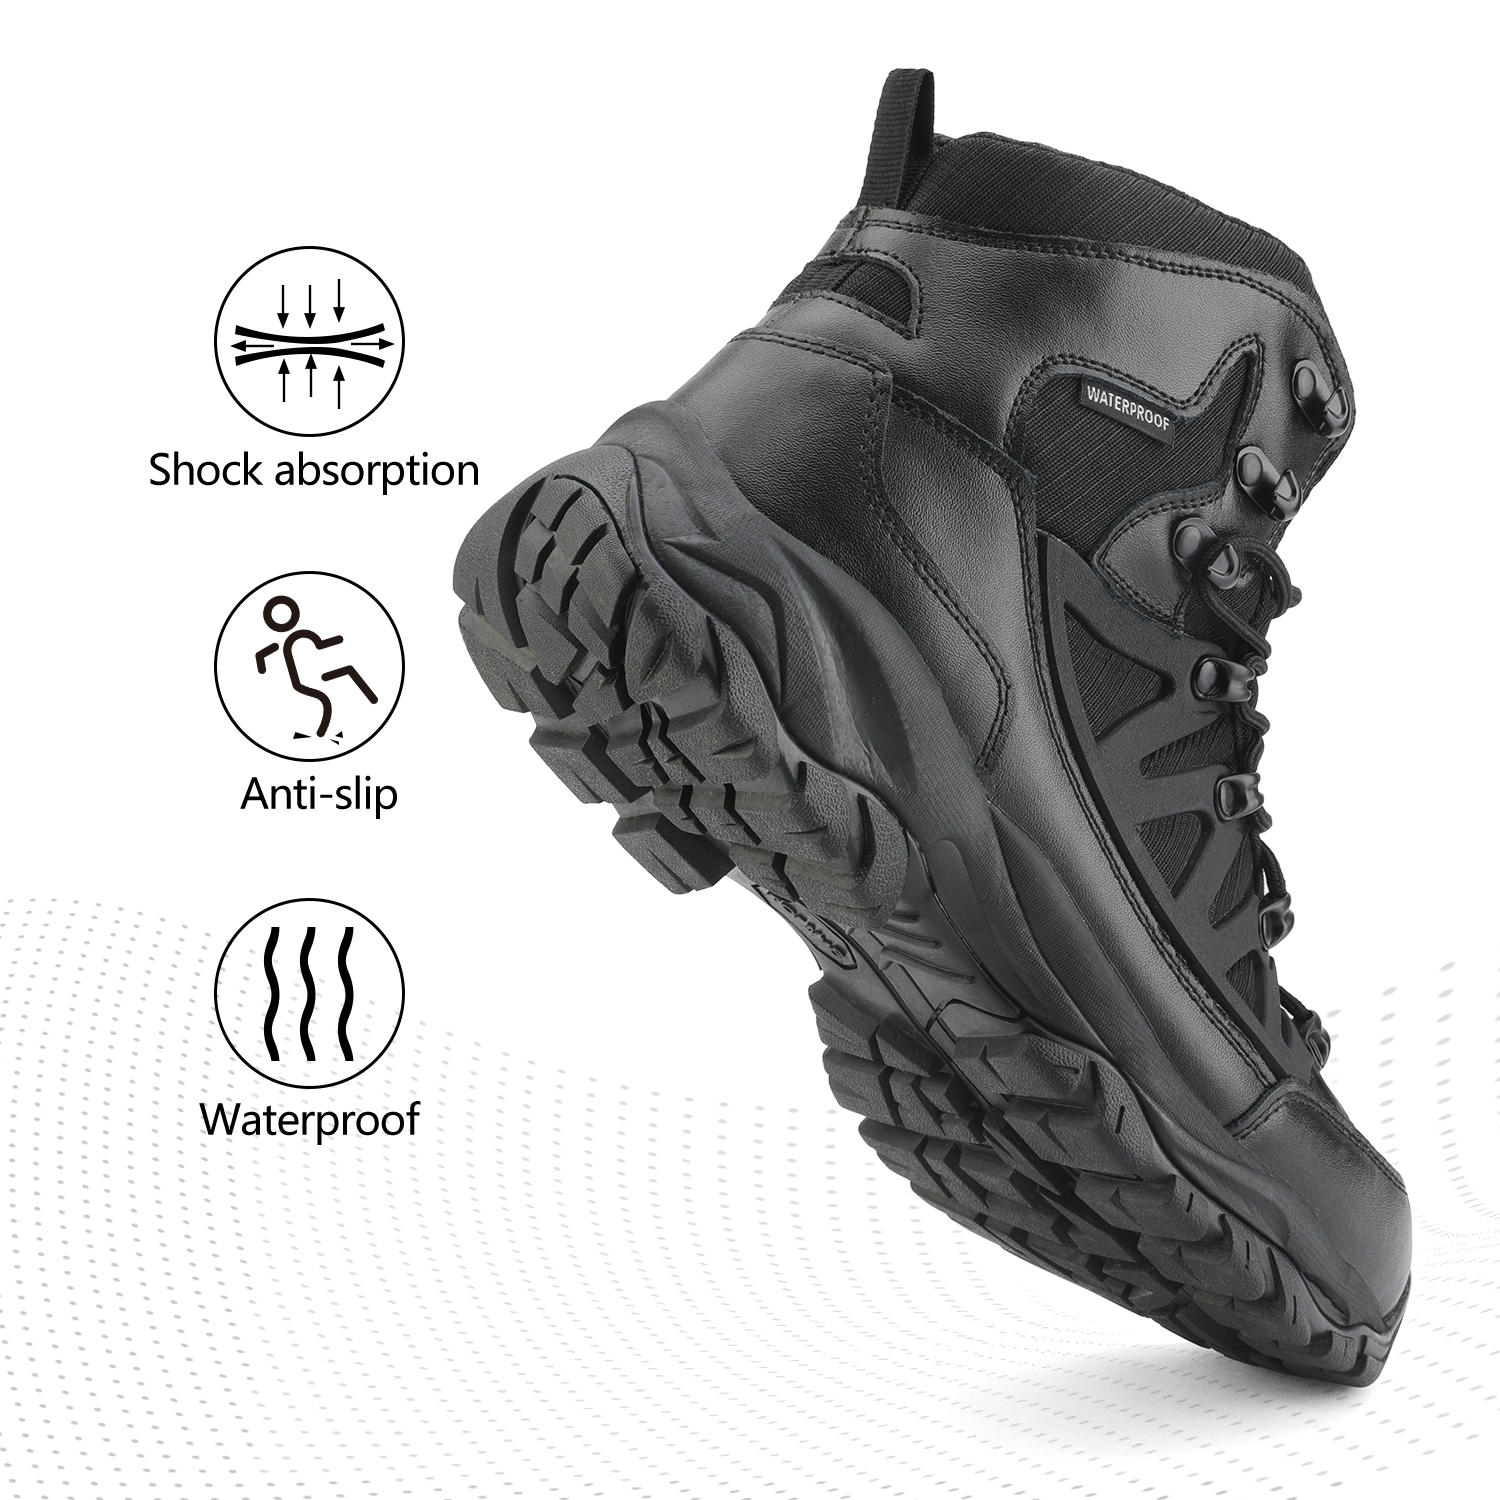 NORTIV-8-Men-039-s-Ankle-Waterproof-Hiking-Boots-Lightweight-Backpacking-Work-Shoes thumbnail 32